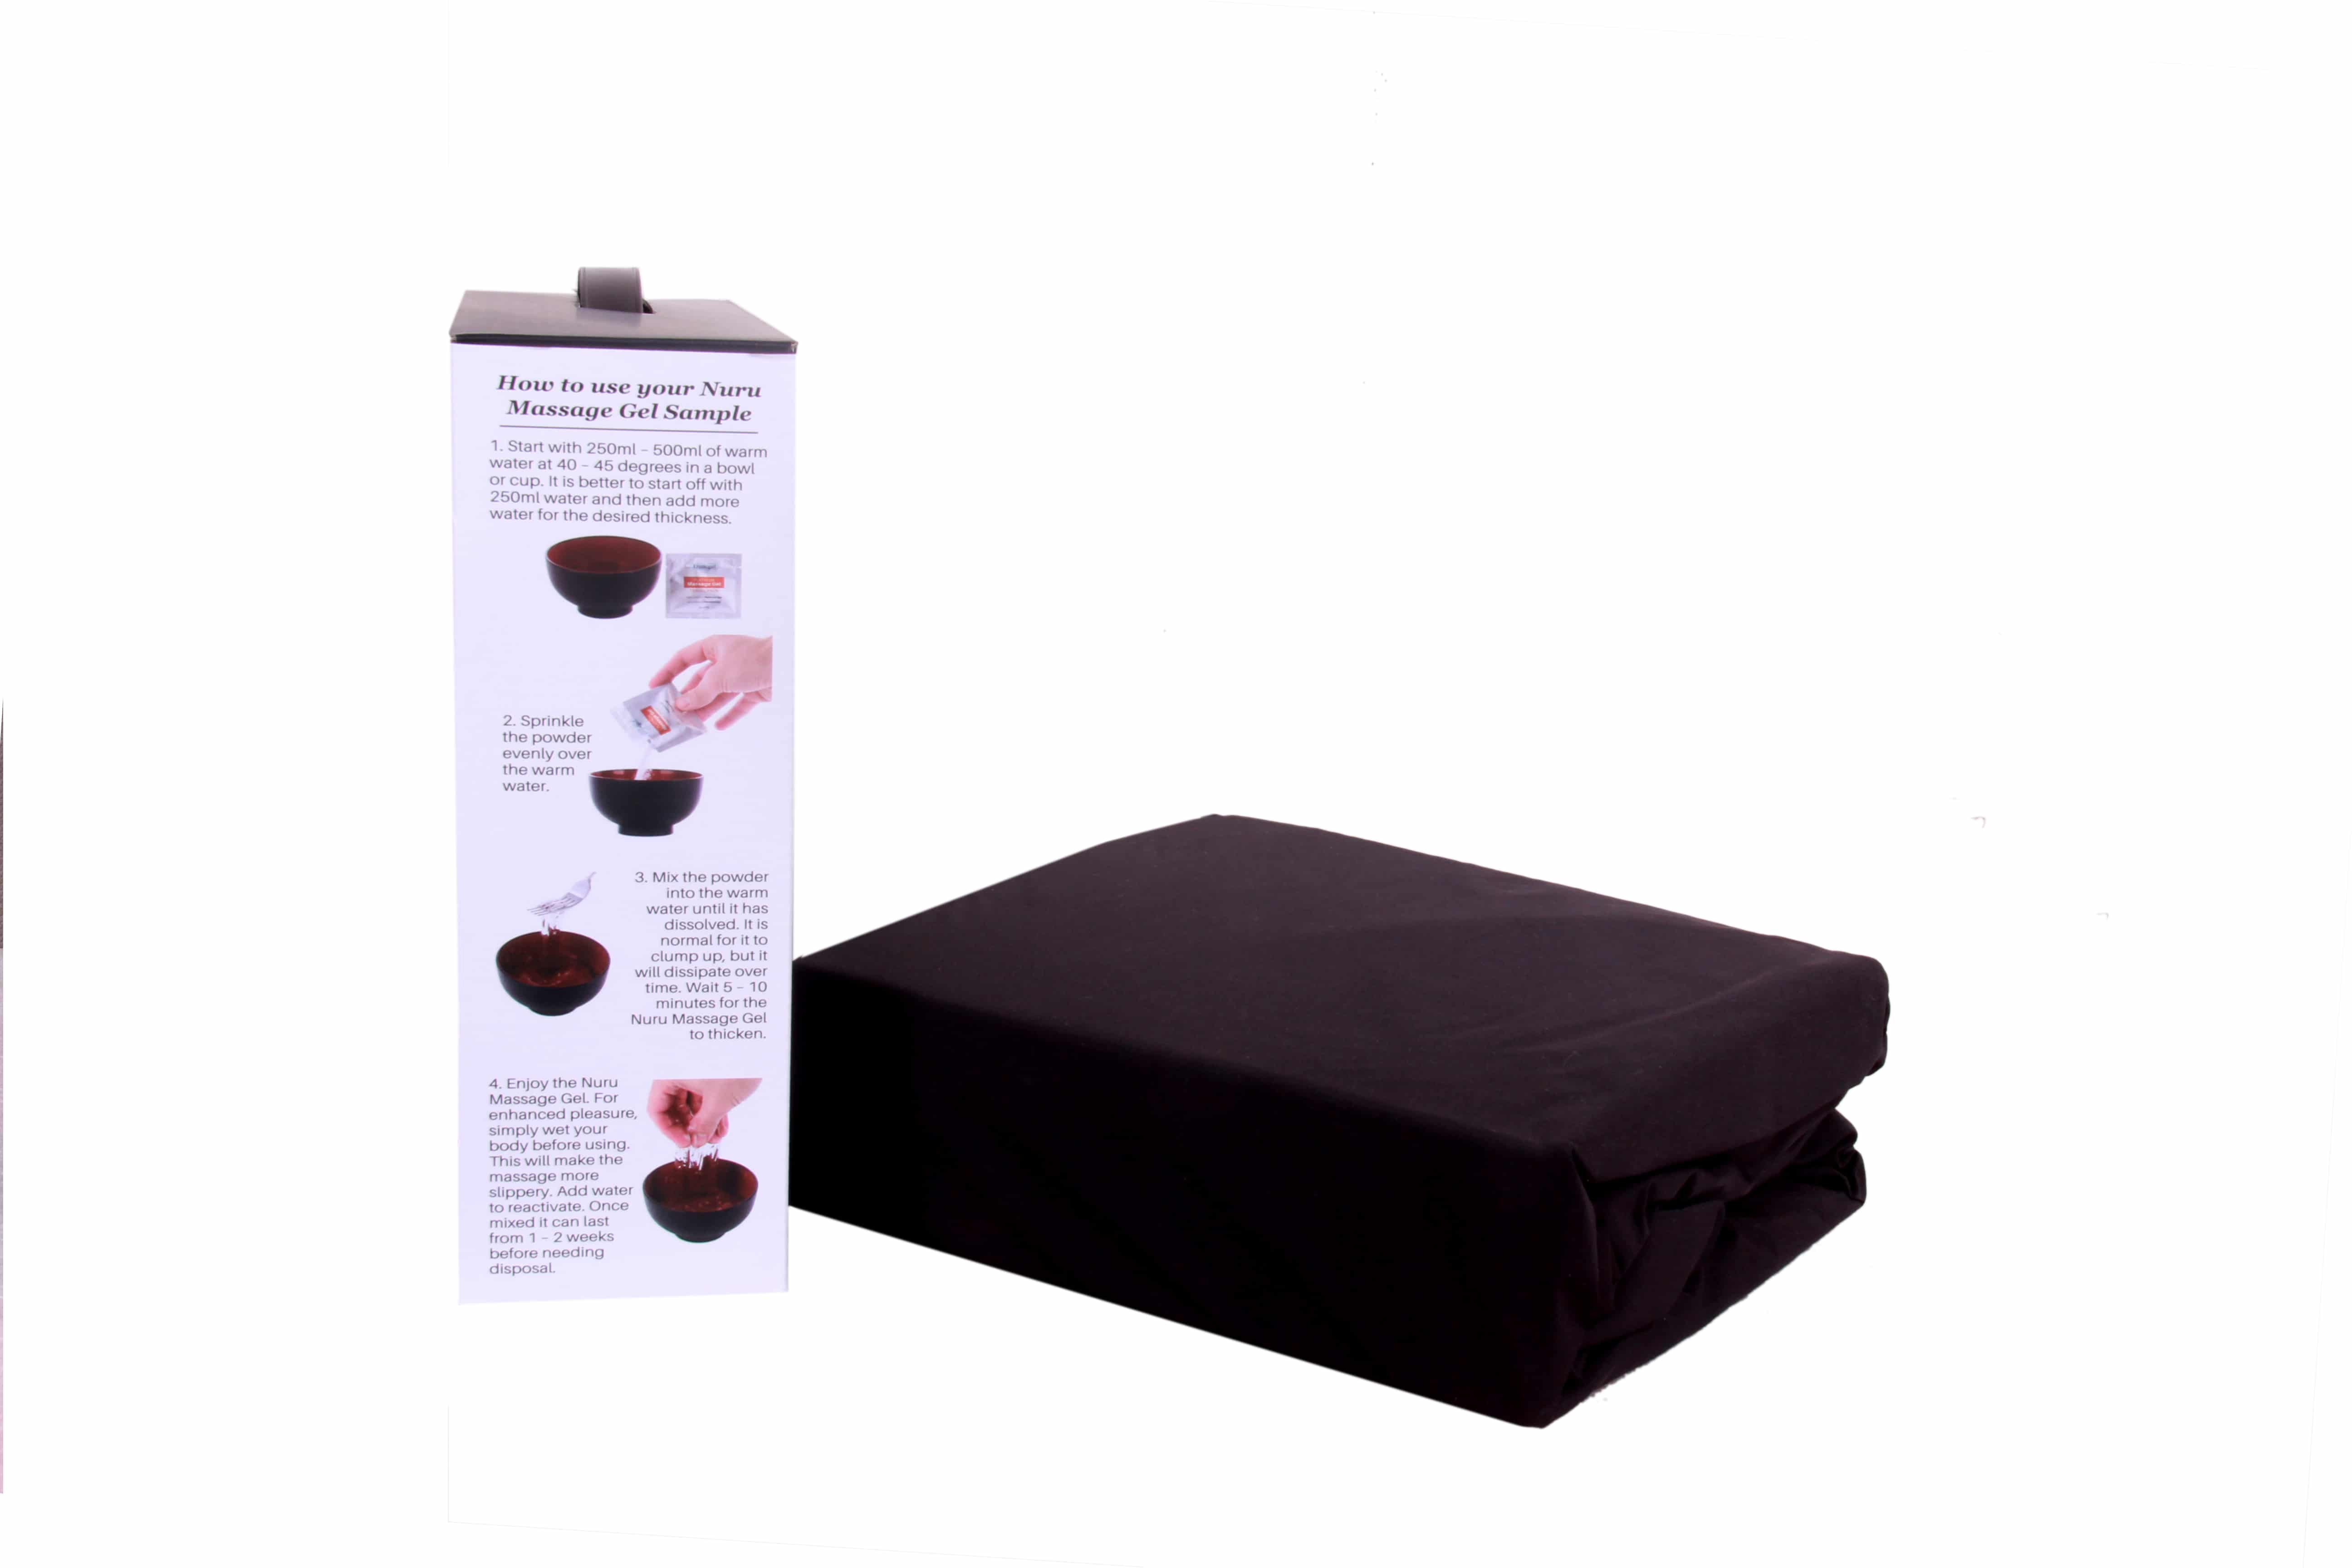 Eroticgel Extreme Sheet Side 1 with box and waterproof sheet